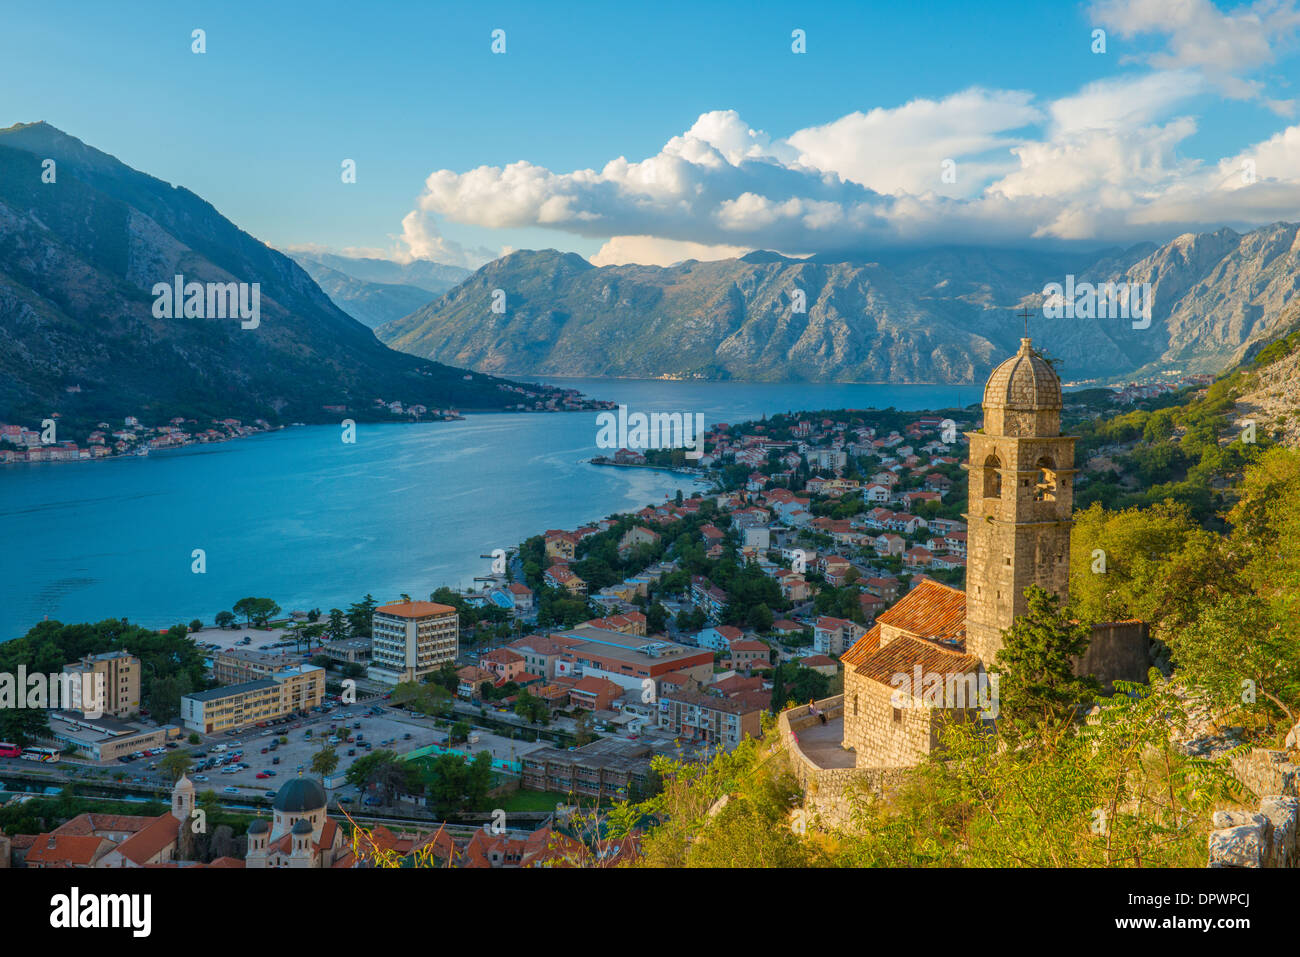 Belltower and view of Kotor along St. Giovanni Trail, Kotor, Montenegro Mediterraean Sea - Stock Image